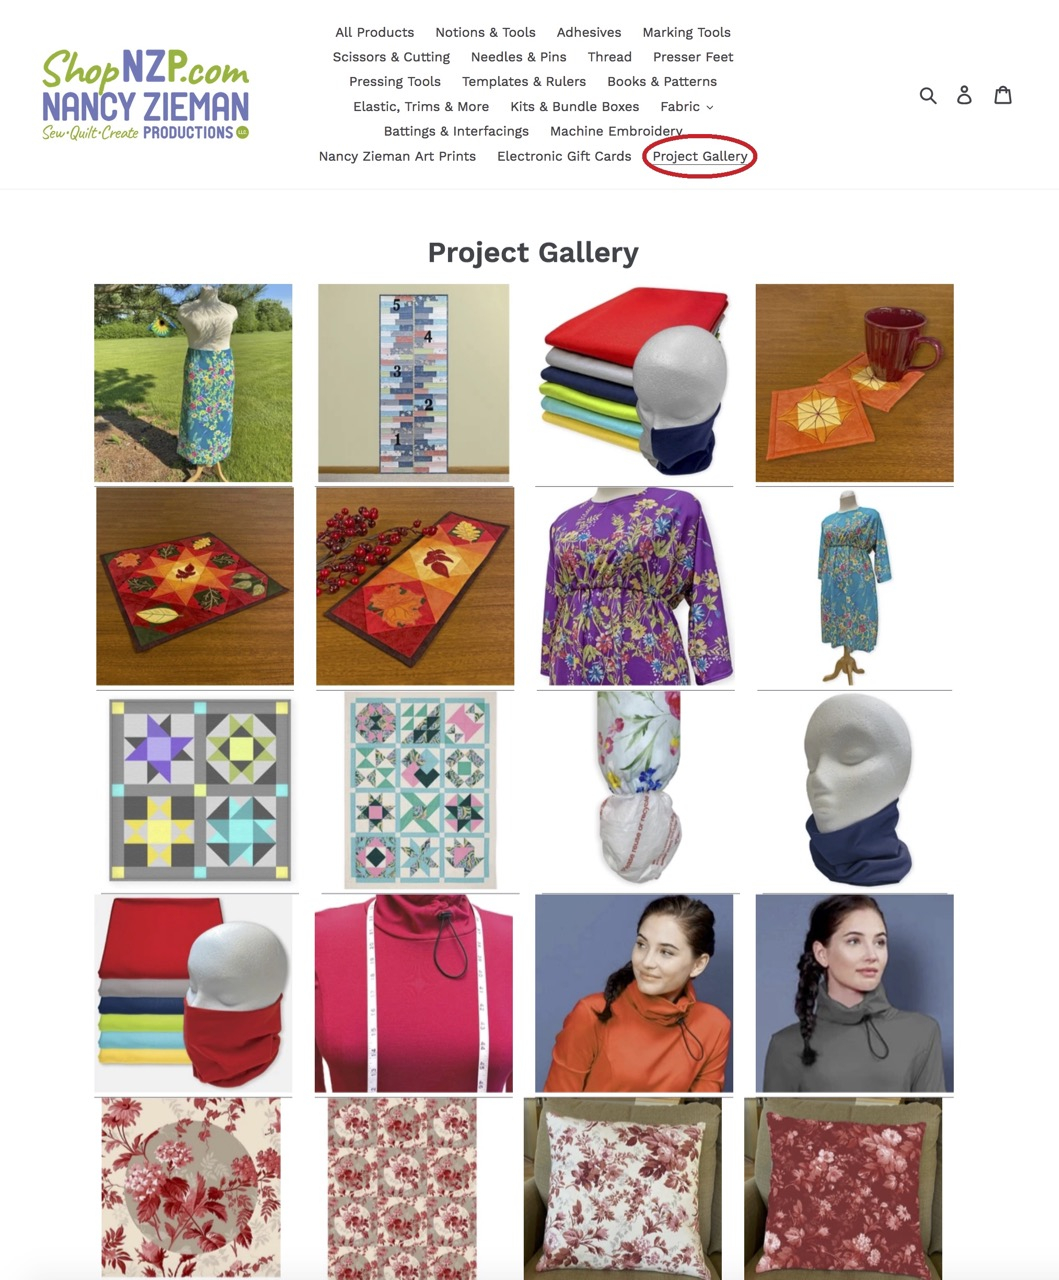 Find Sewing Project and Quilting Project Inspiration in the Project Gallery at ShopNZP.com